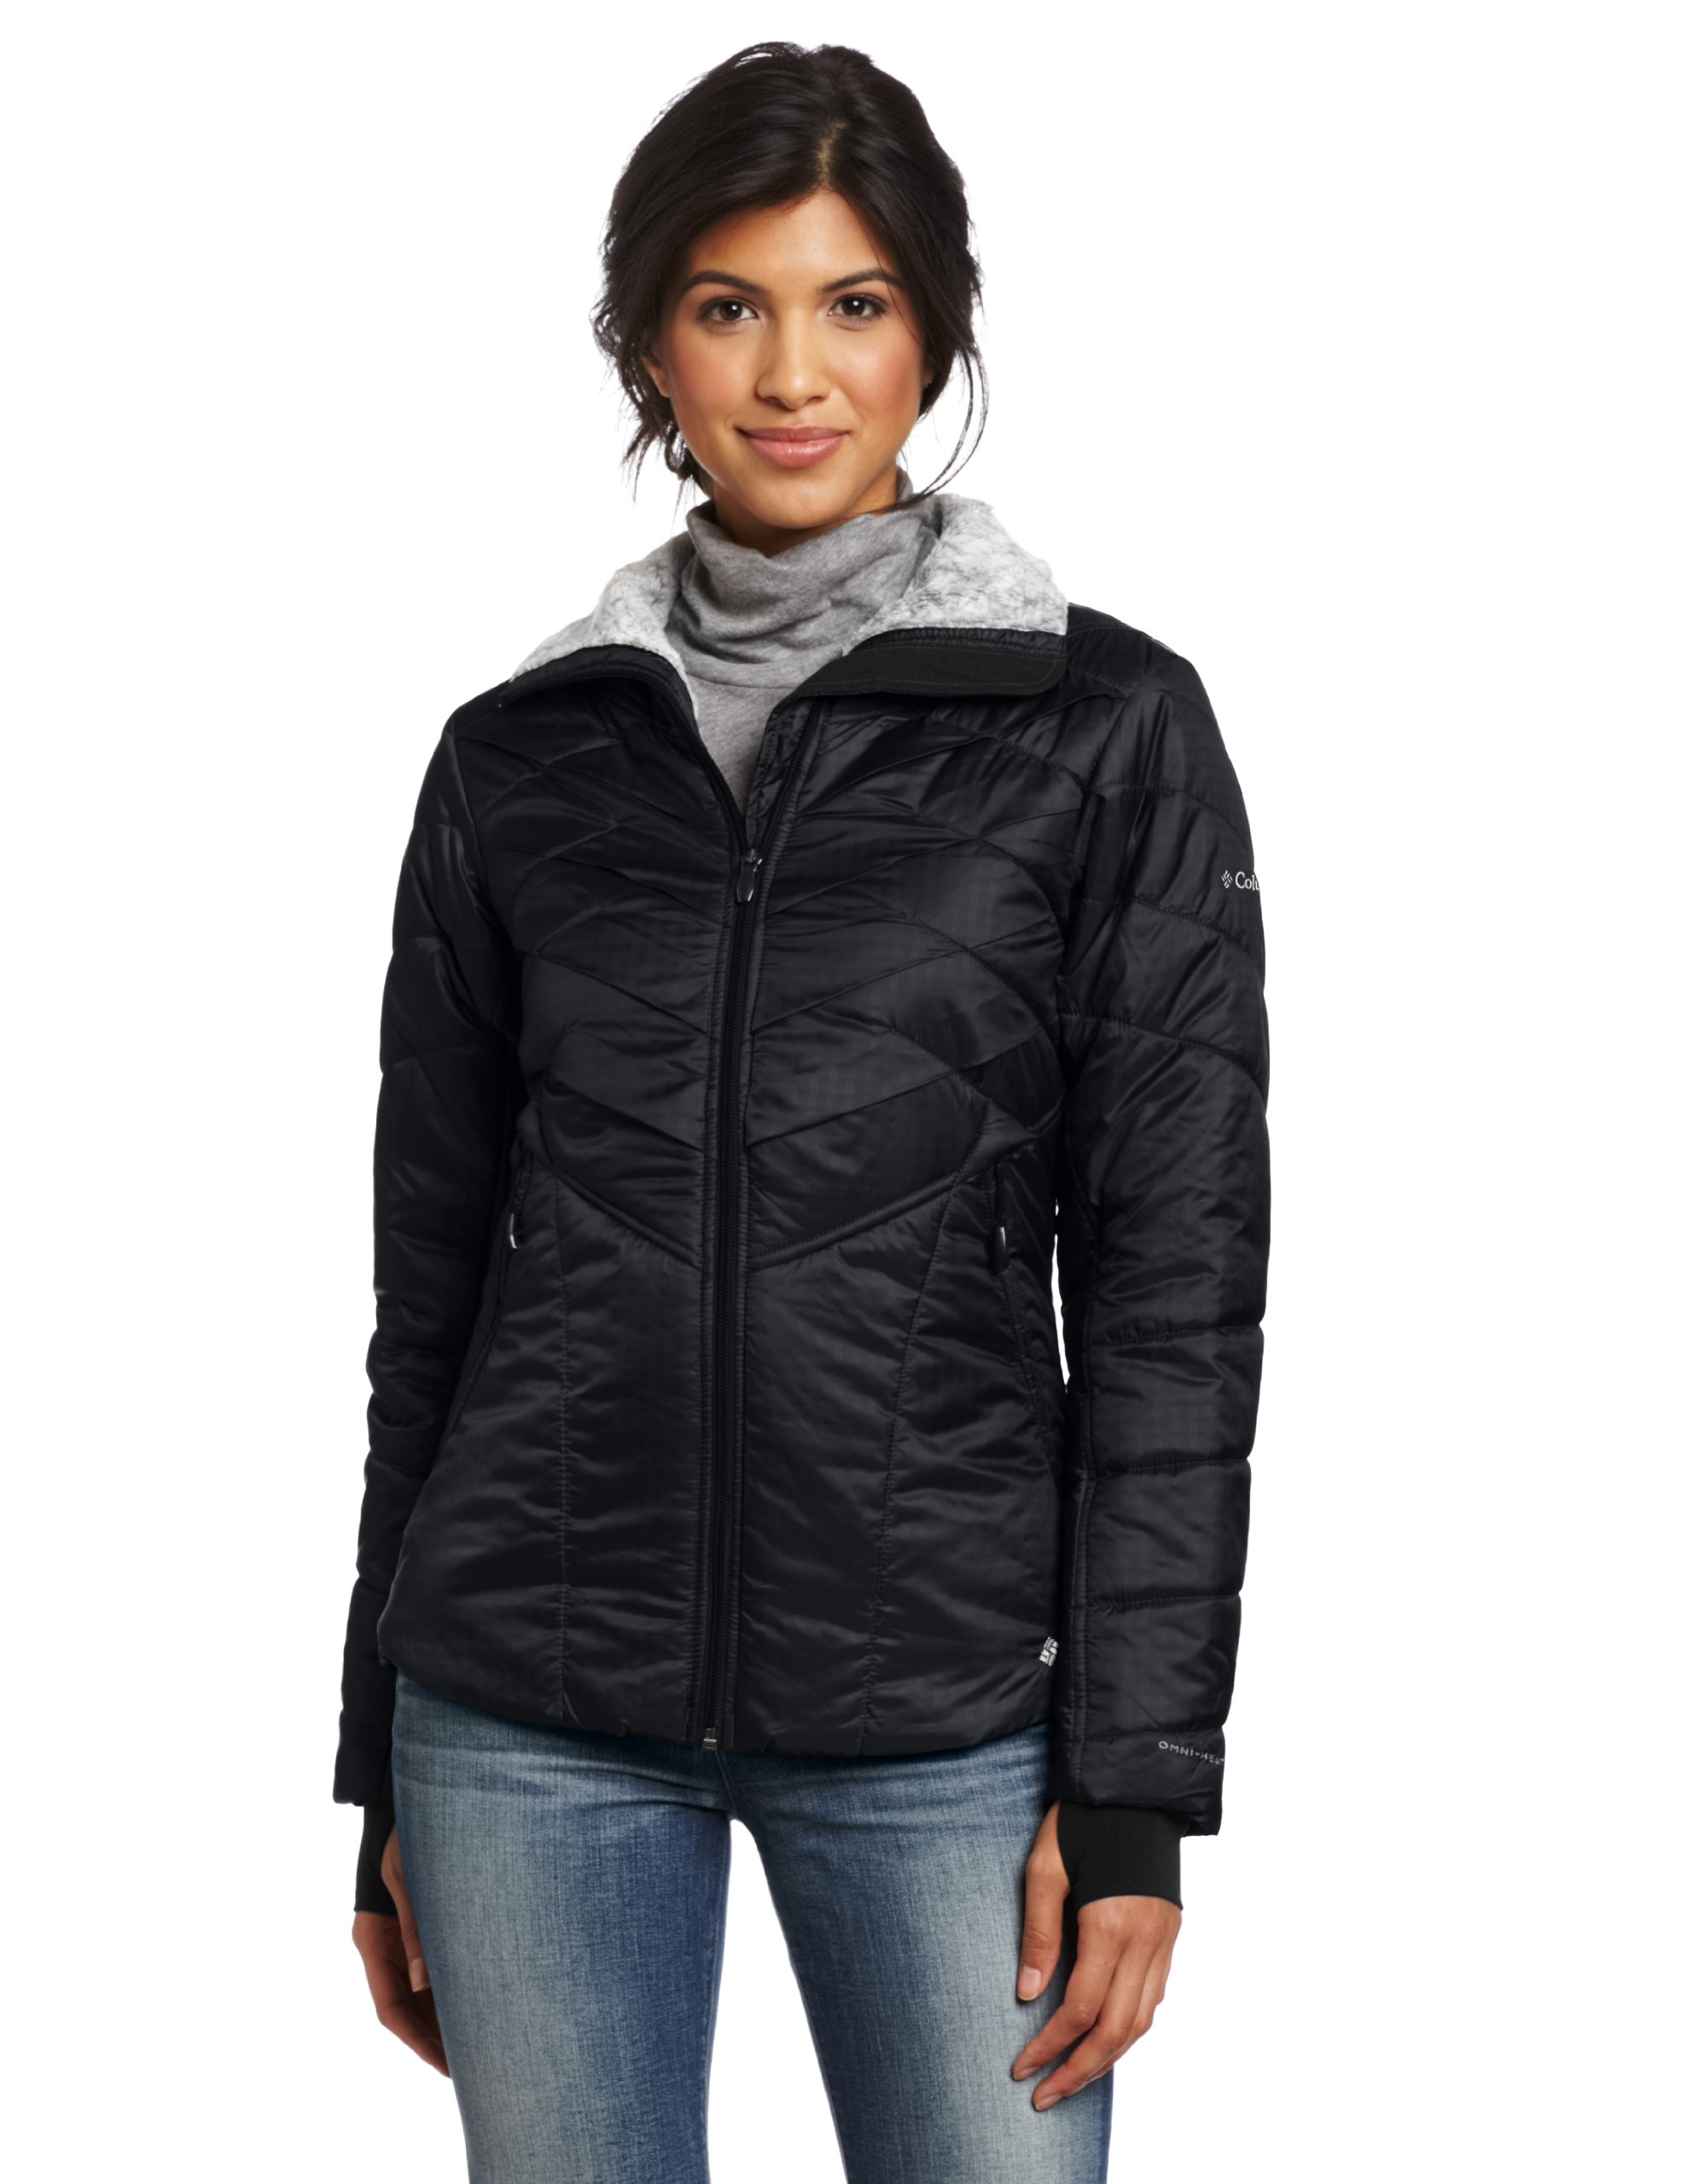 Columbia Women's Kaleidaslope II Jacket, Black, Large